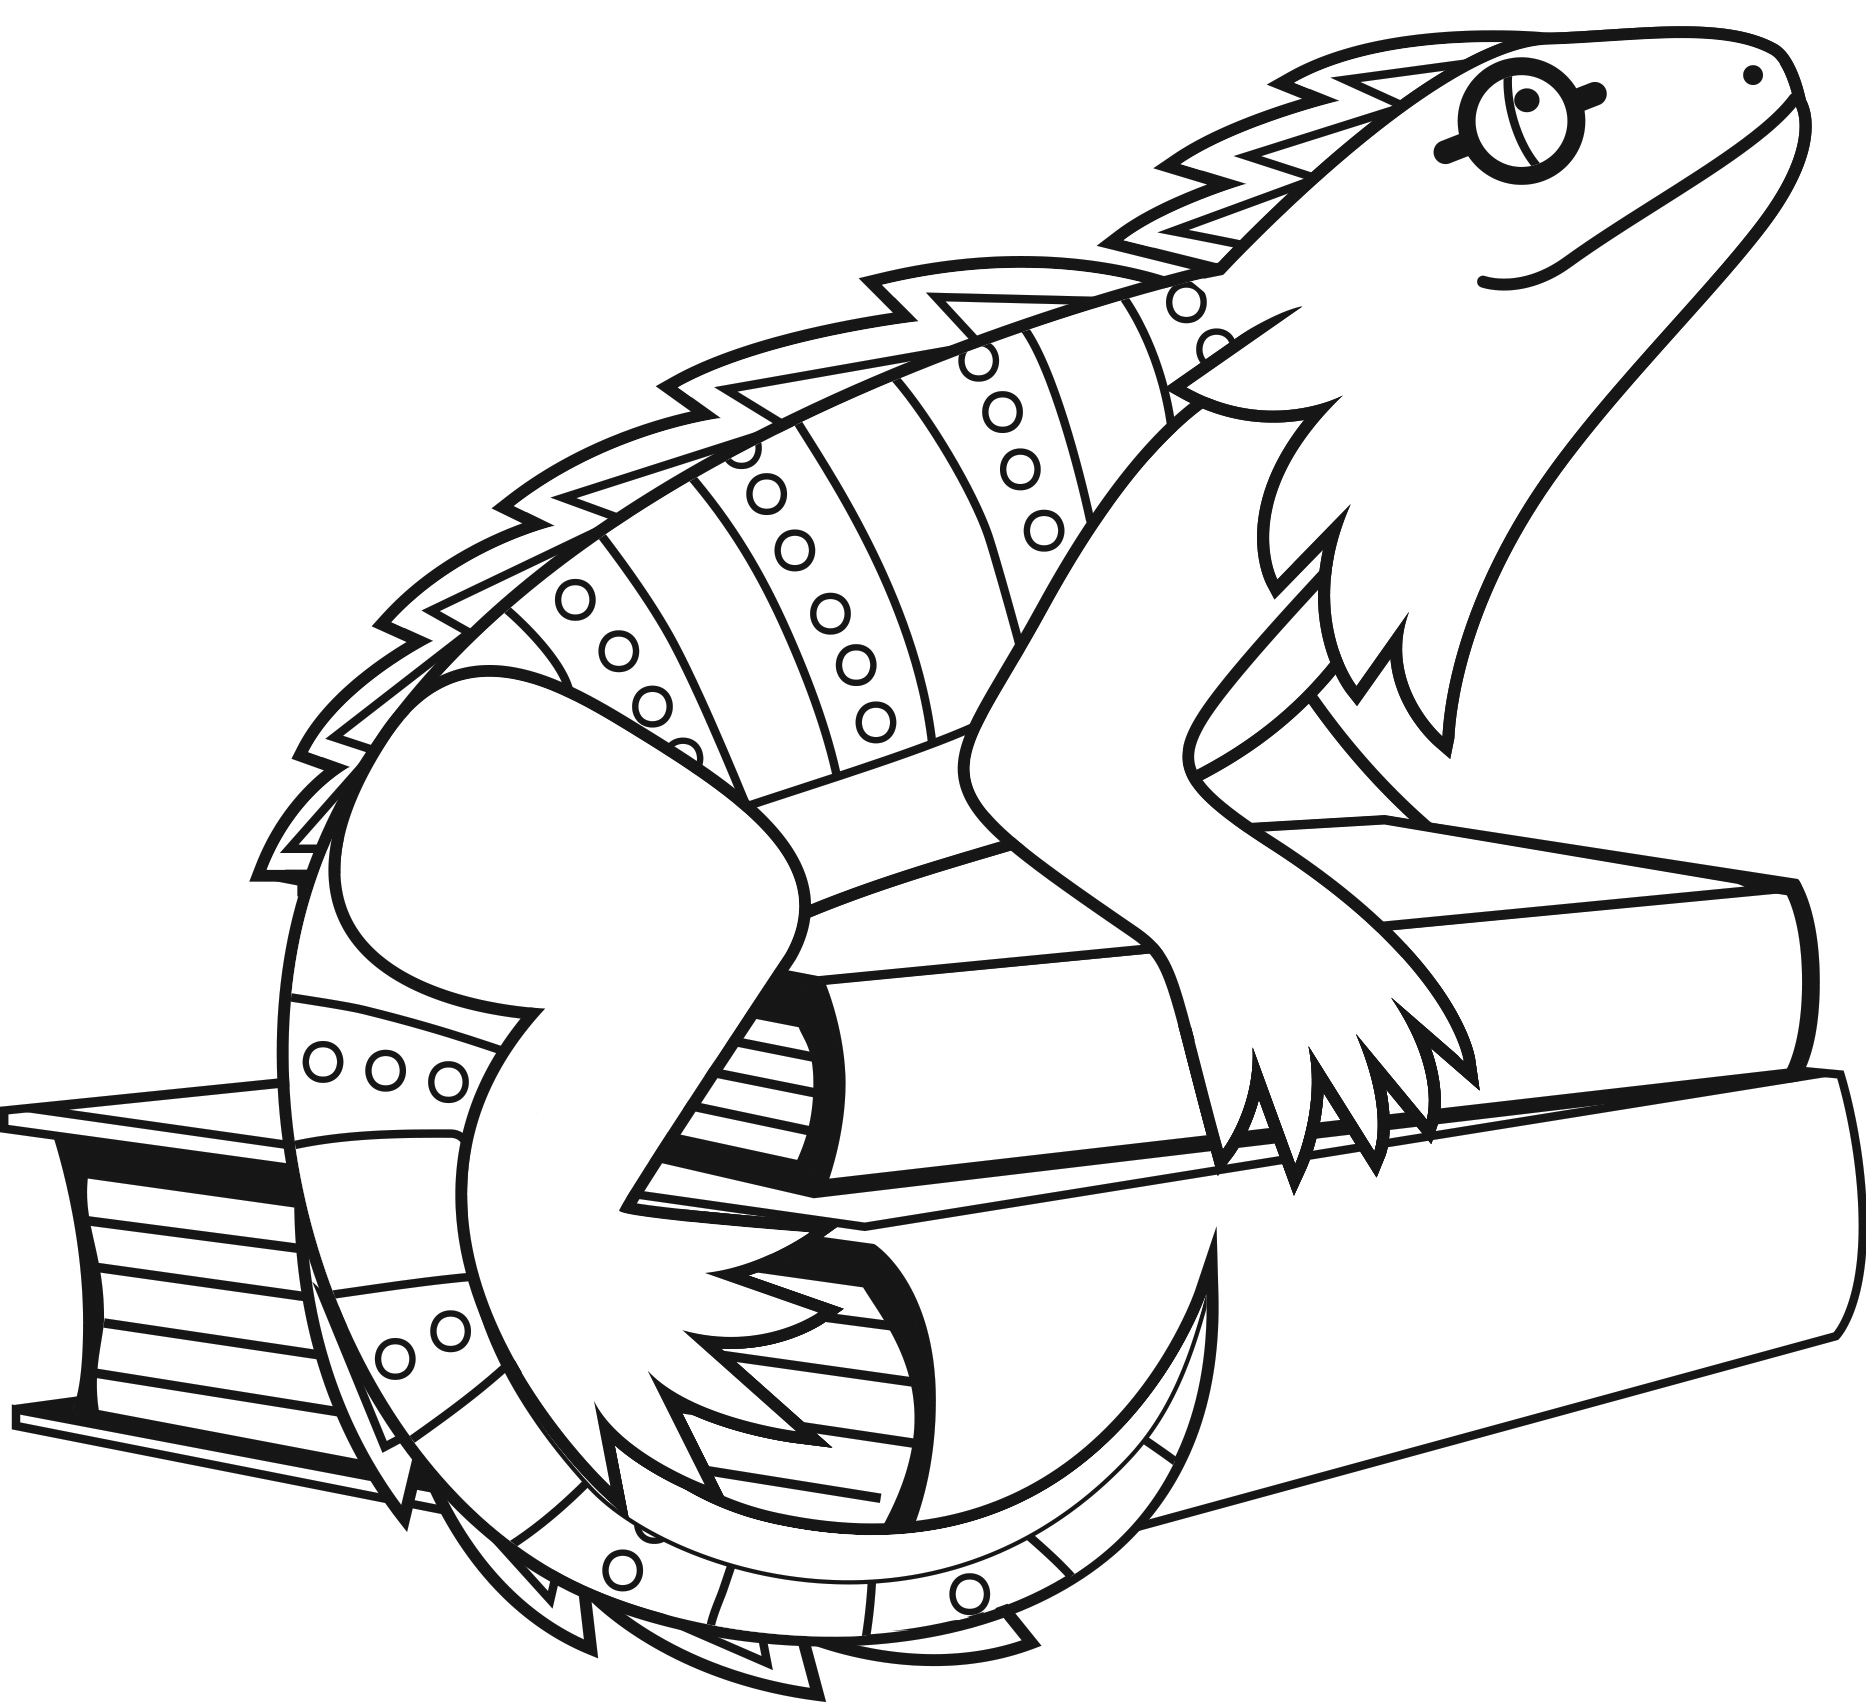 Printable Iguana Coloring Pages Coloring Me Iguana Coloring Page